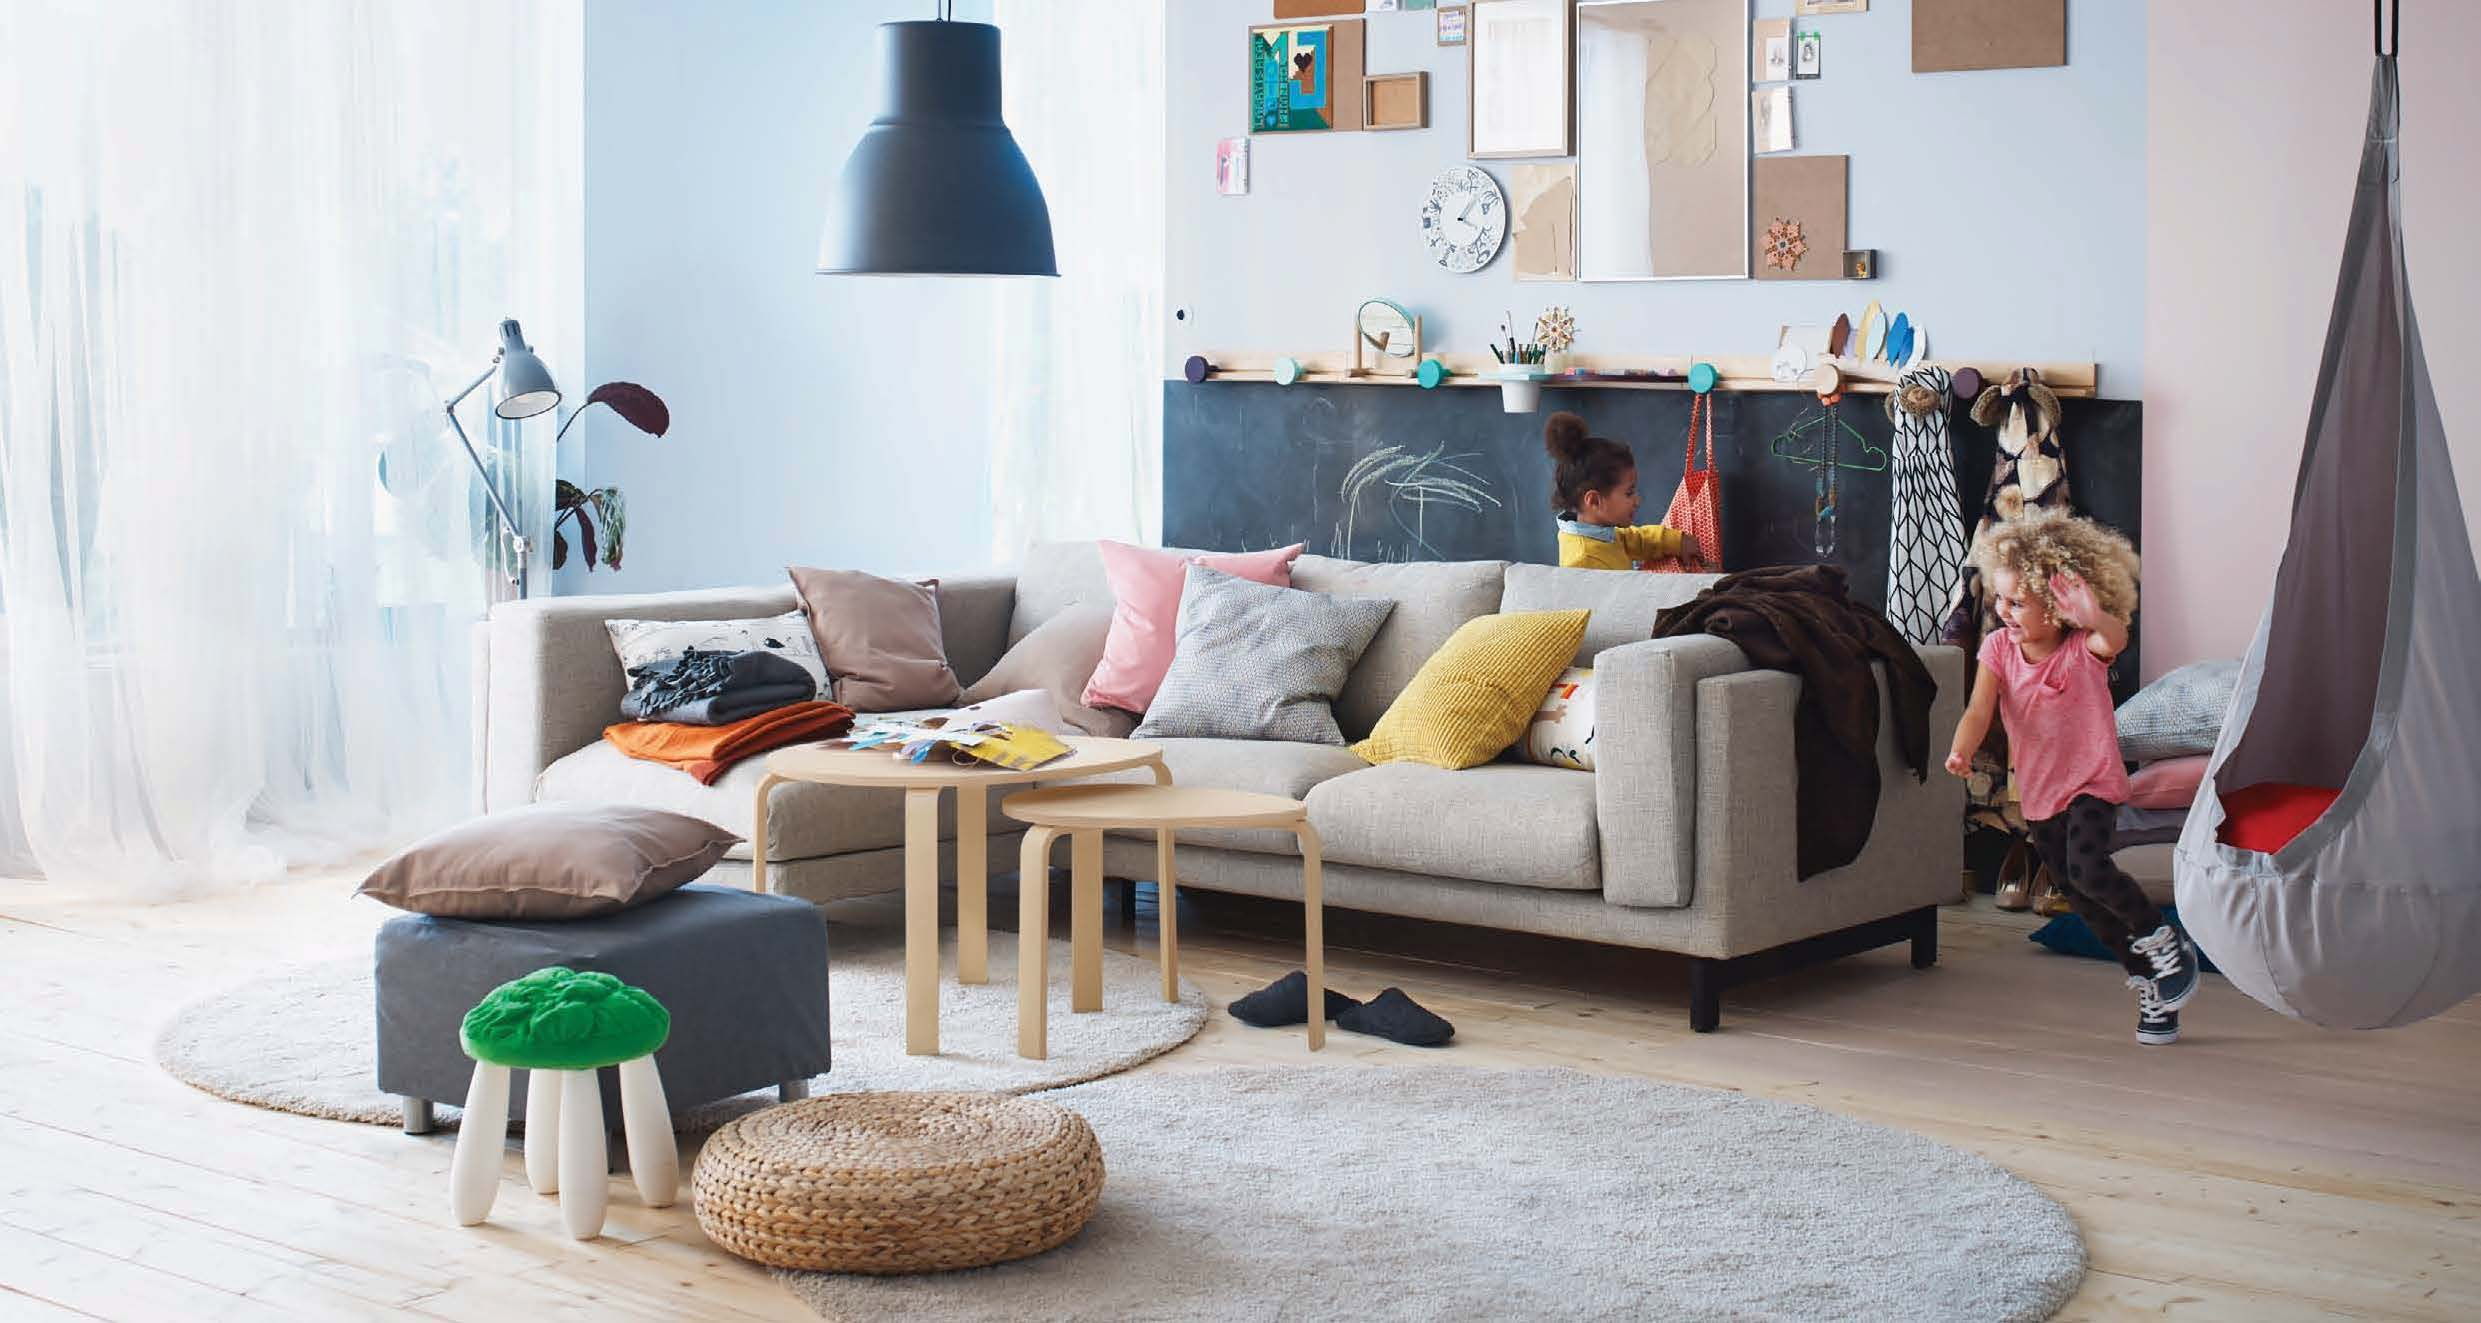 ikea small living room decorating ideas for with tv over fireplace artsy interior design